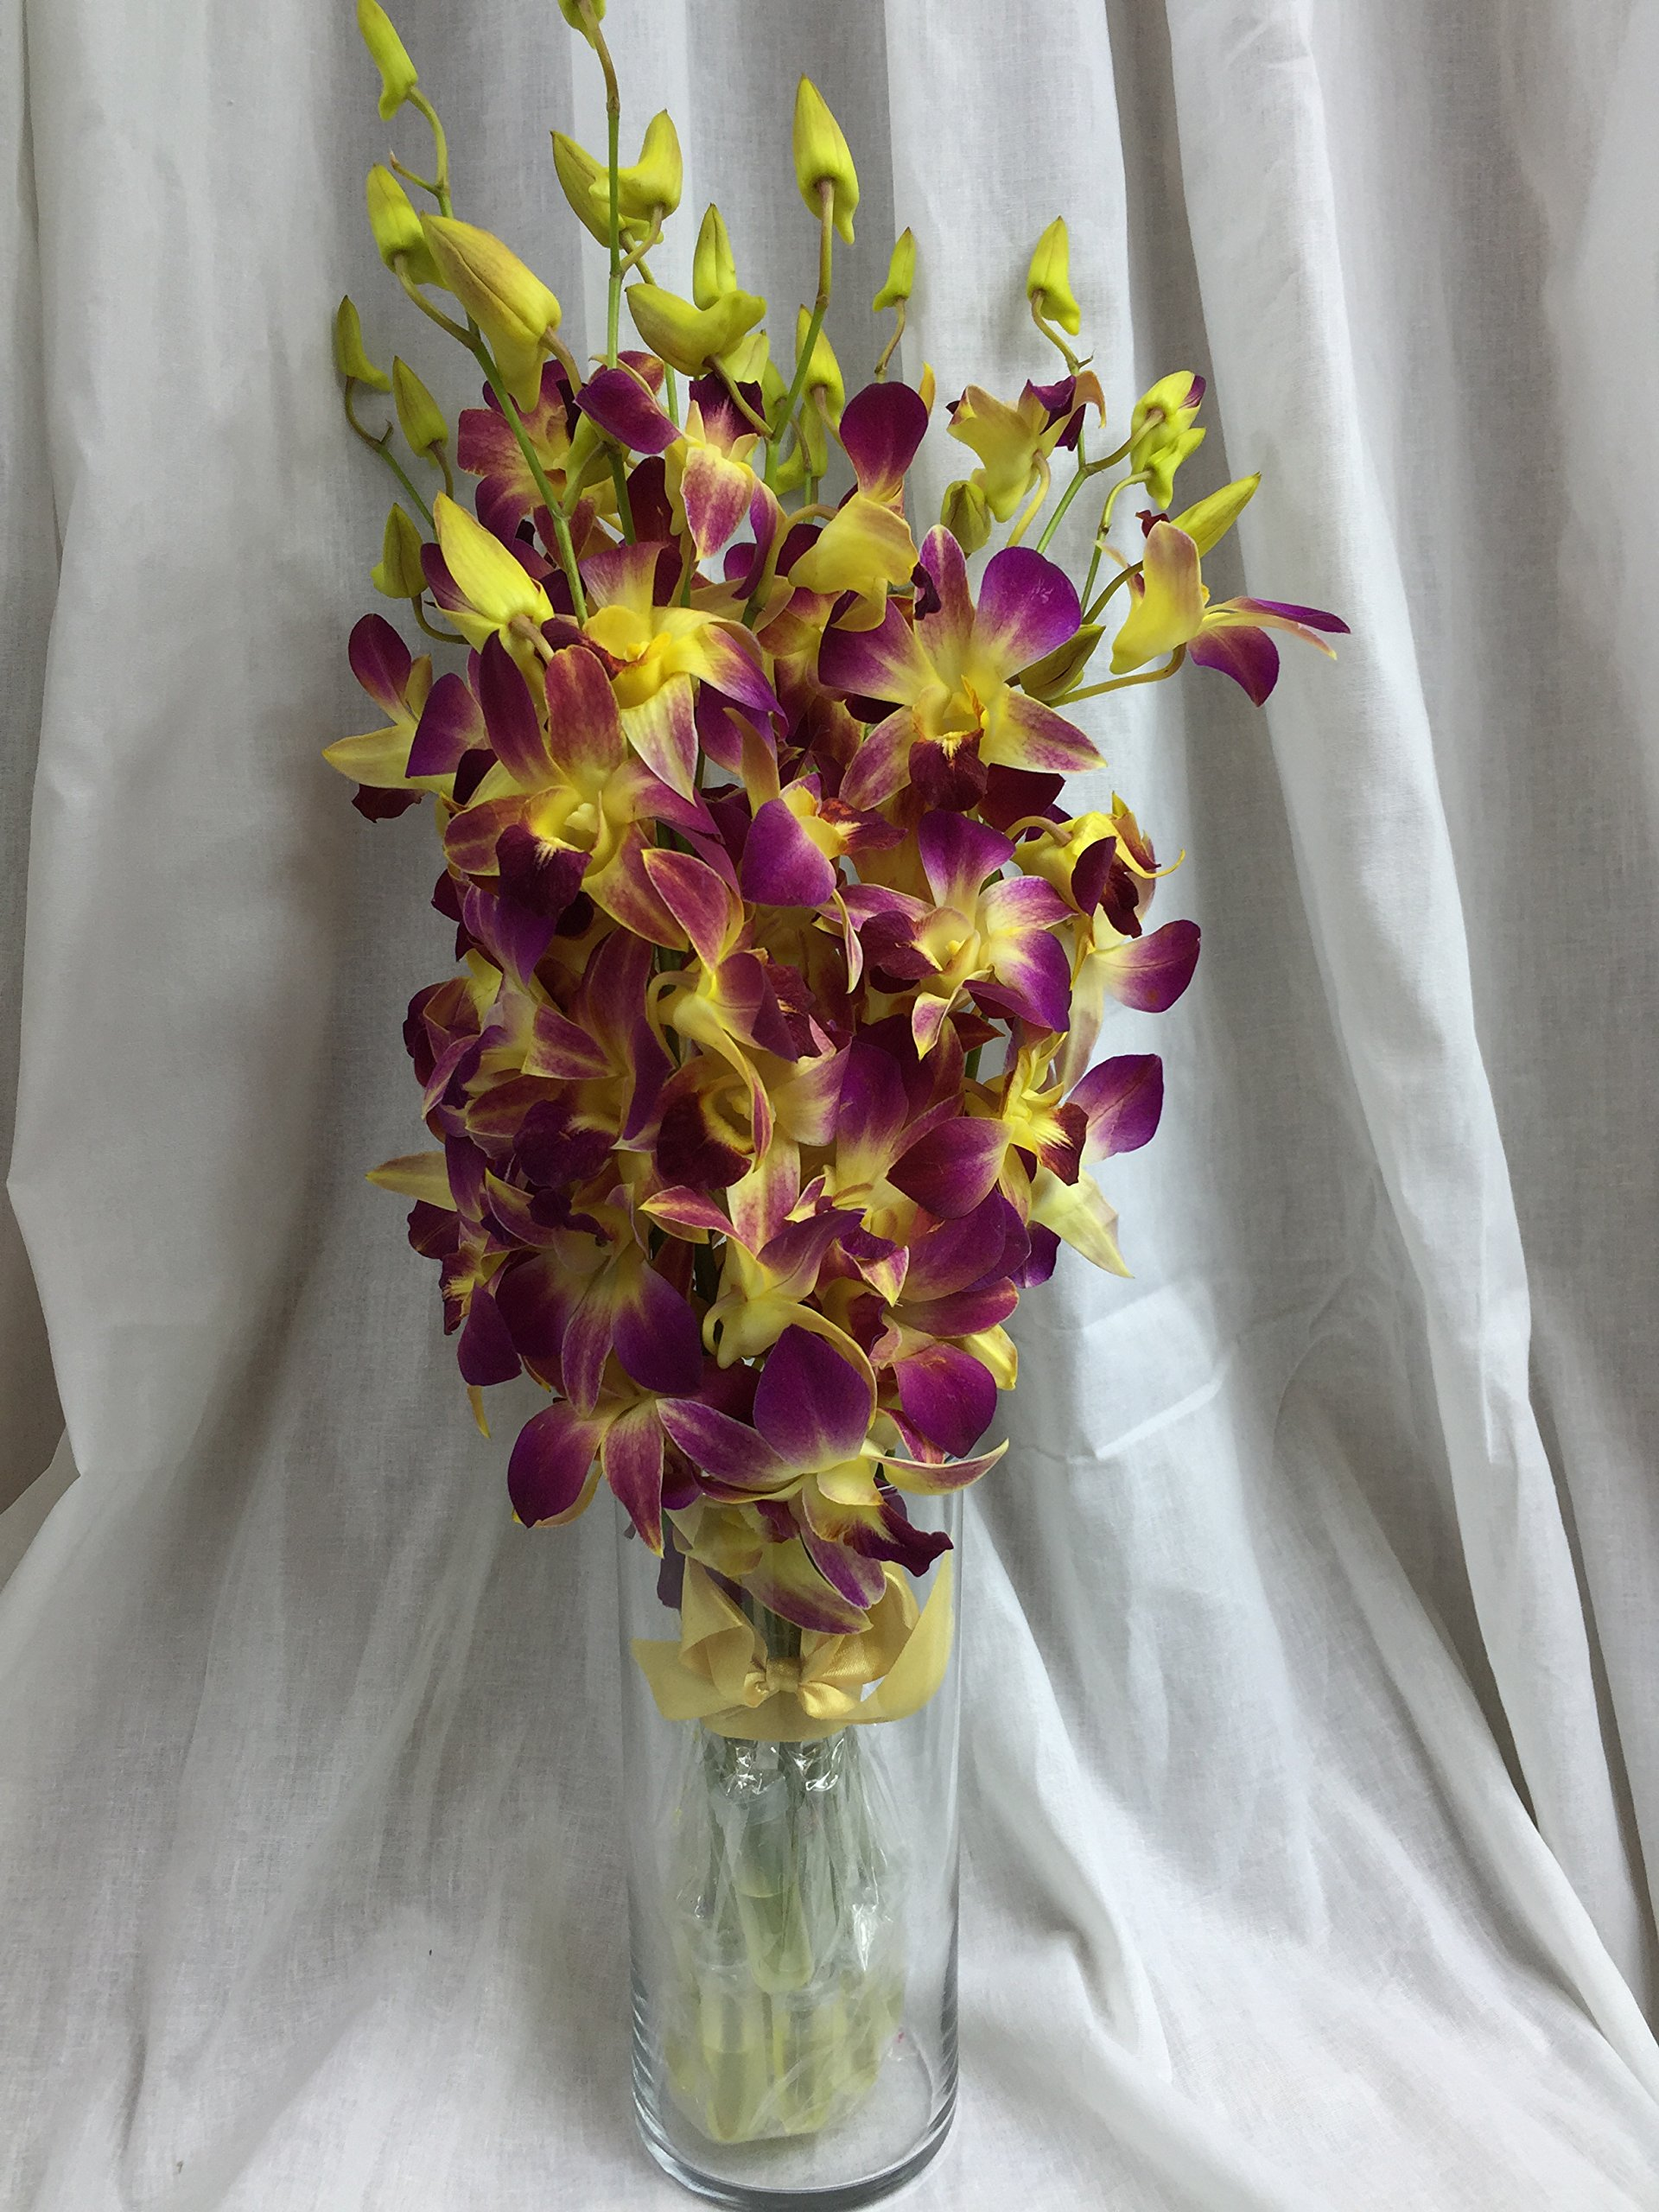 Orchid - Fresh Cut Flowers - Ten Stems of Dendrobium Sonia Tinted Yellow (Free Vase) by eflowerwholesale